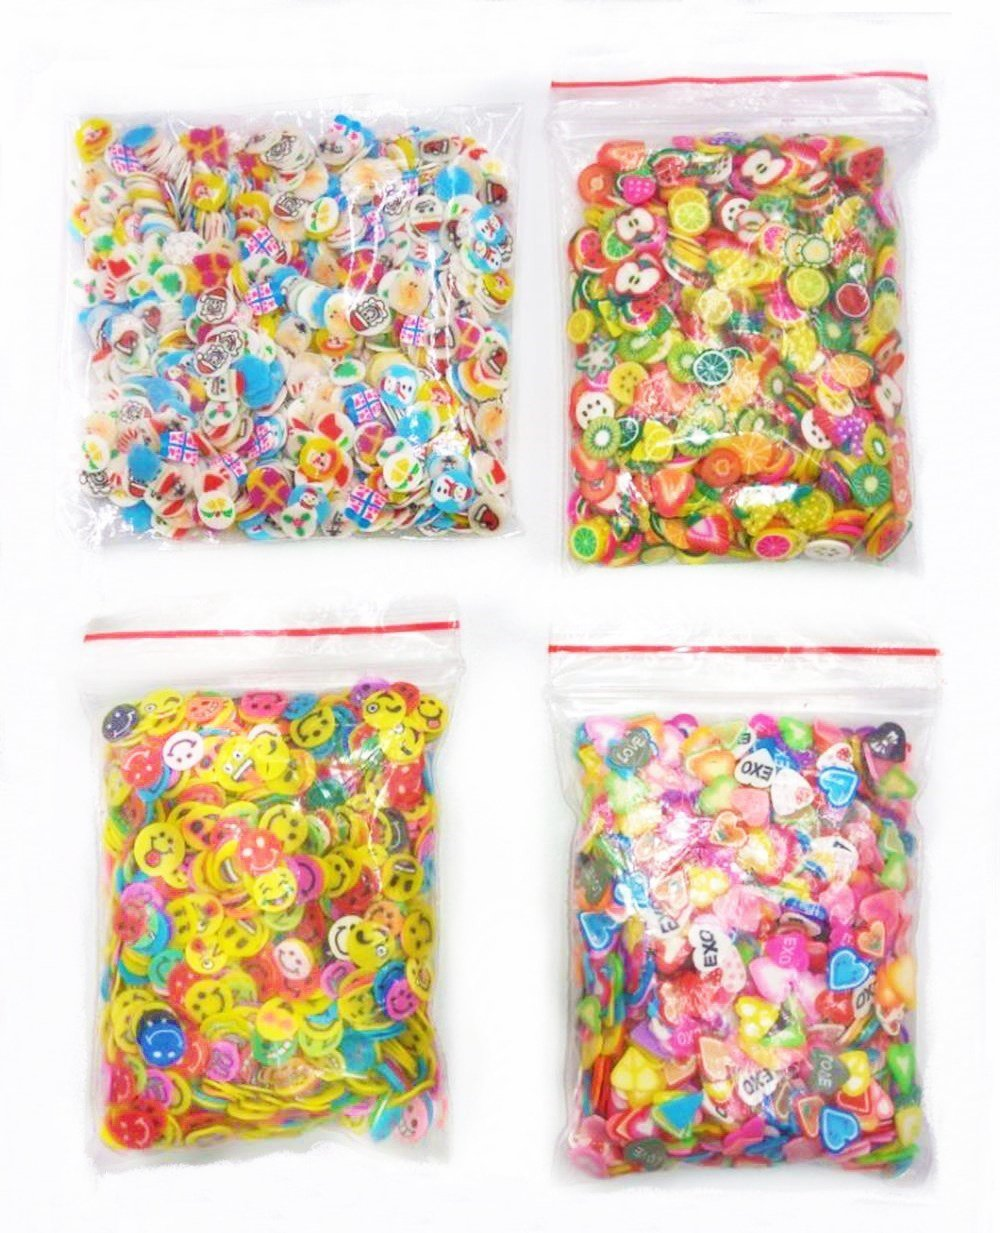 4000 Pcs 3D Polymer Fimo Slices Slime Supplies Charms Slime Making Kit DIY Nail Art Decoration Arts Crafts(Fruit,Smile face,Love Heart,Father Christmas Pattern)-1000Pcs/Pack Jimess